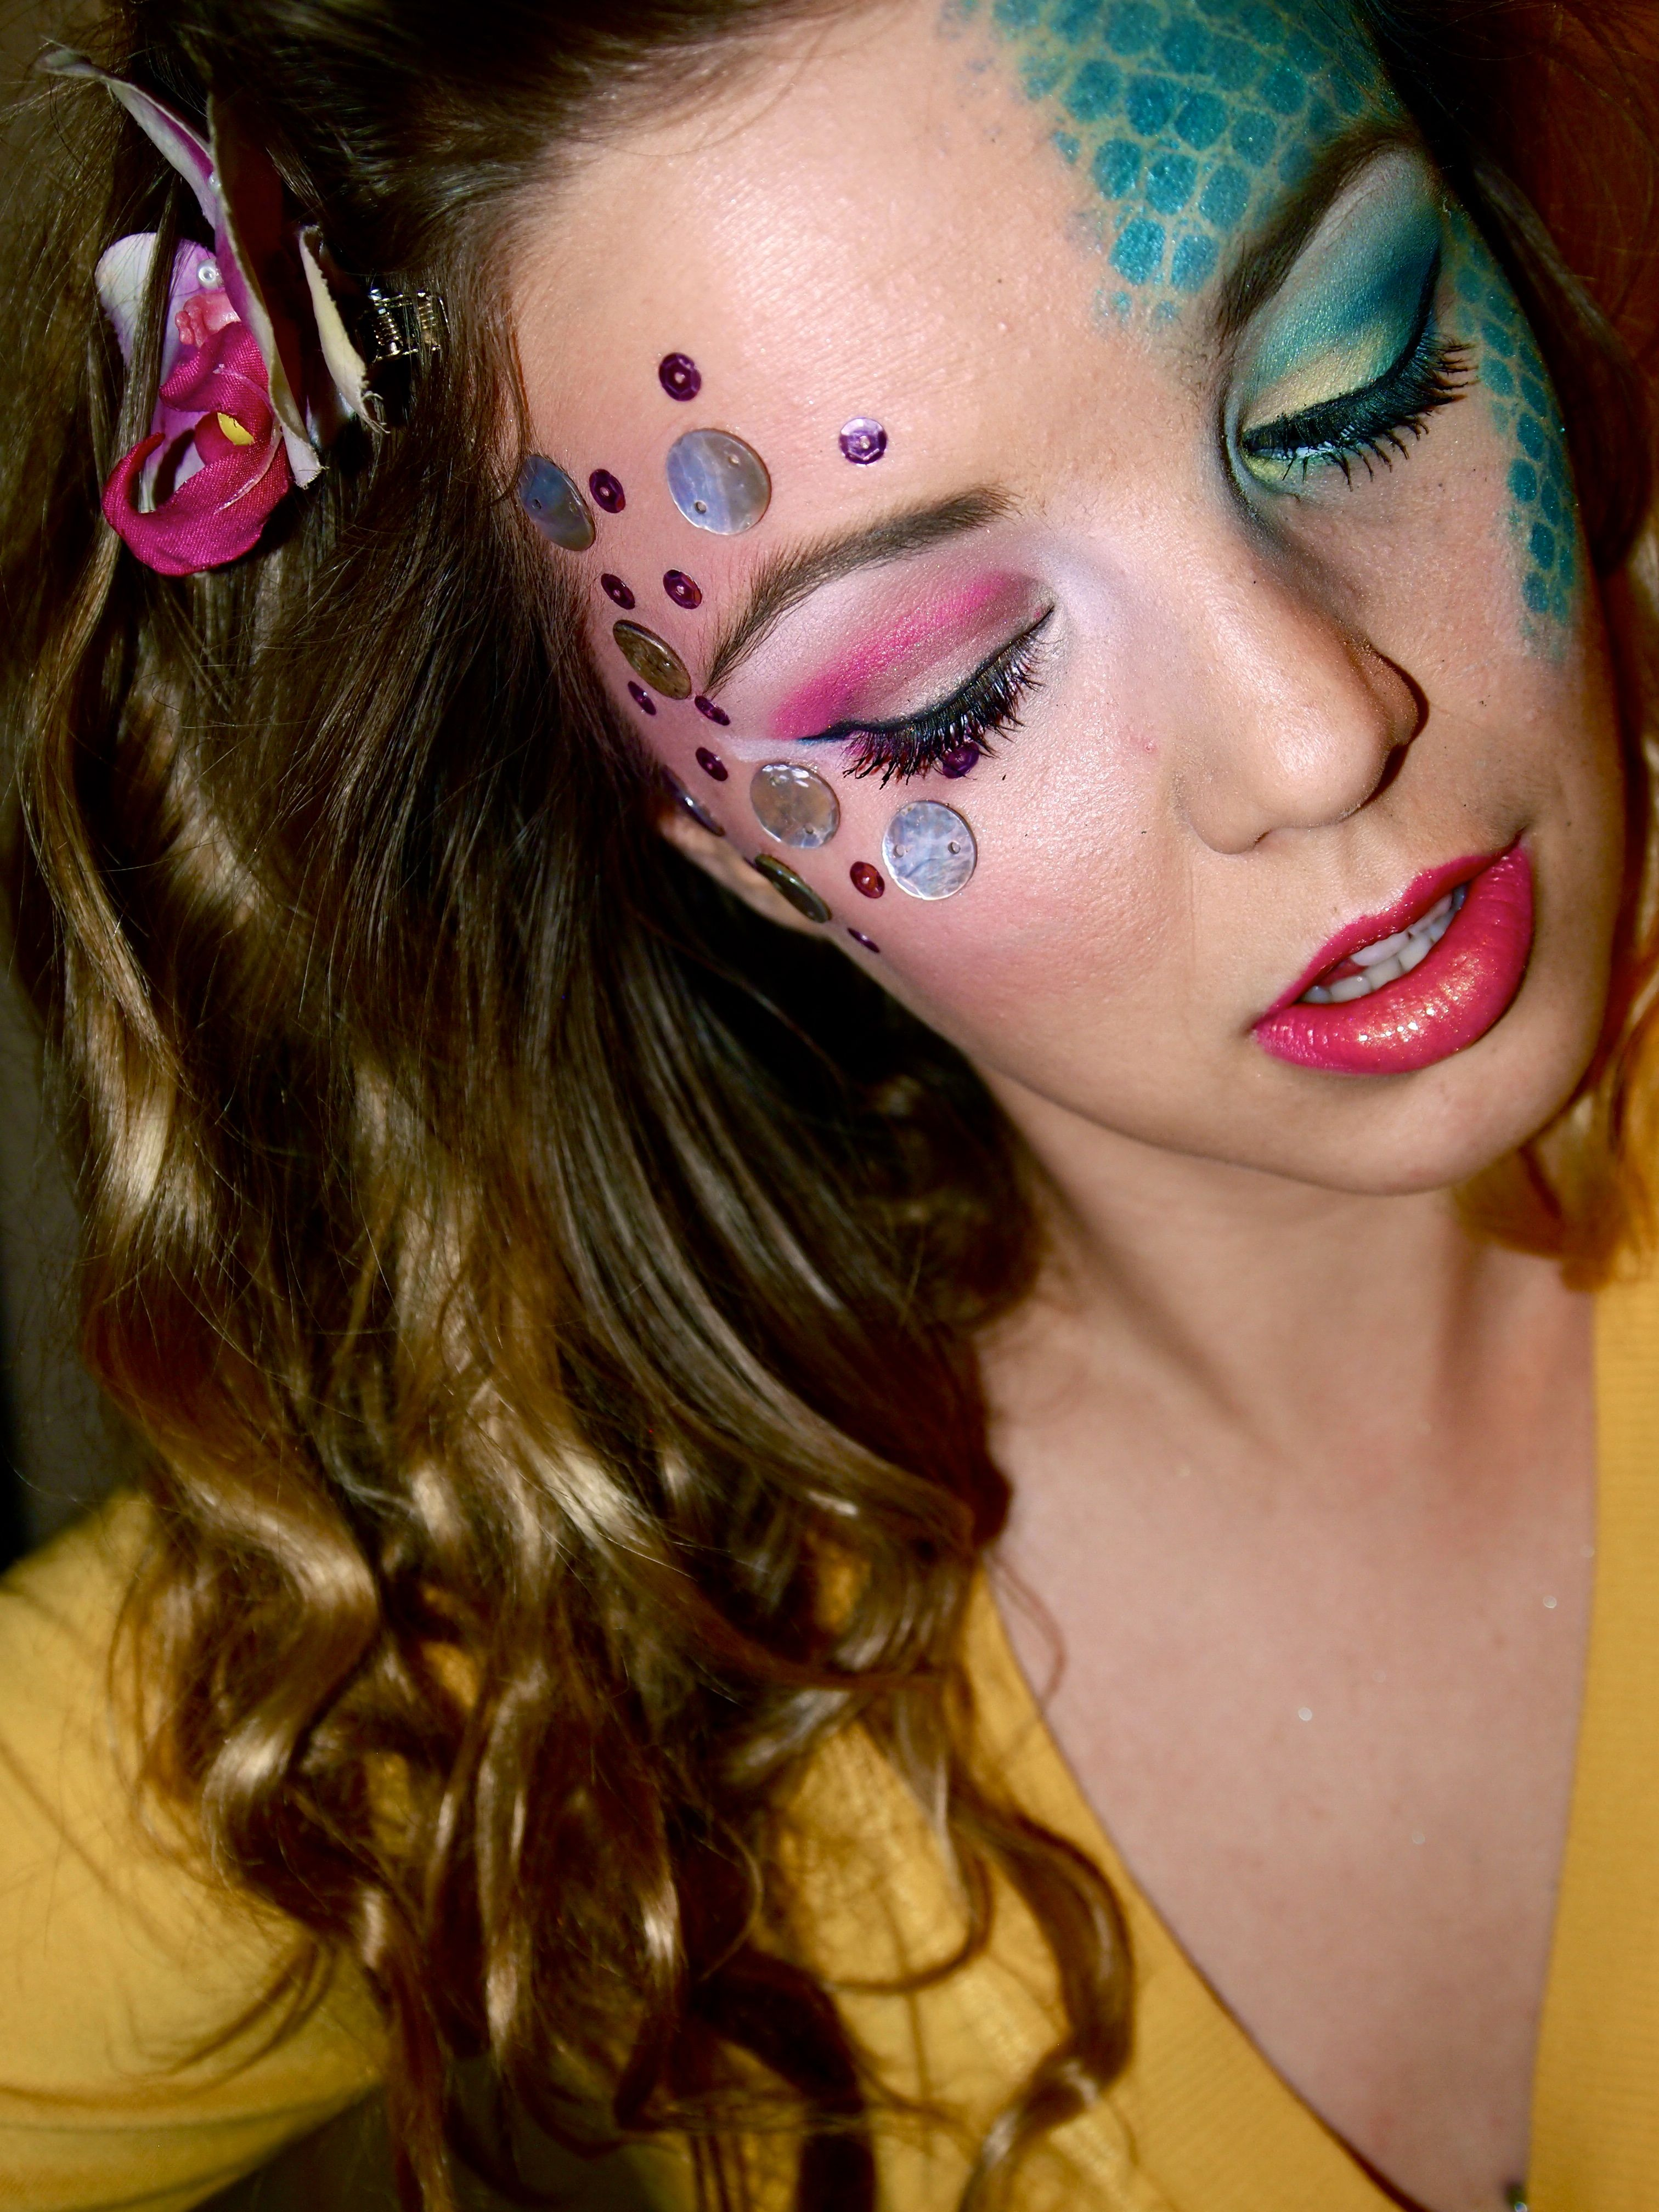 Mermaid Makeup: The BeShelled Femme or The Scaled Goddess | Face ...